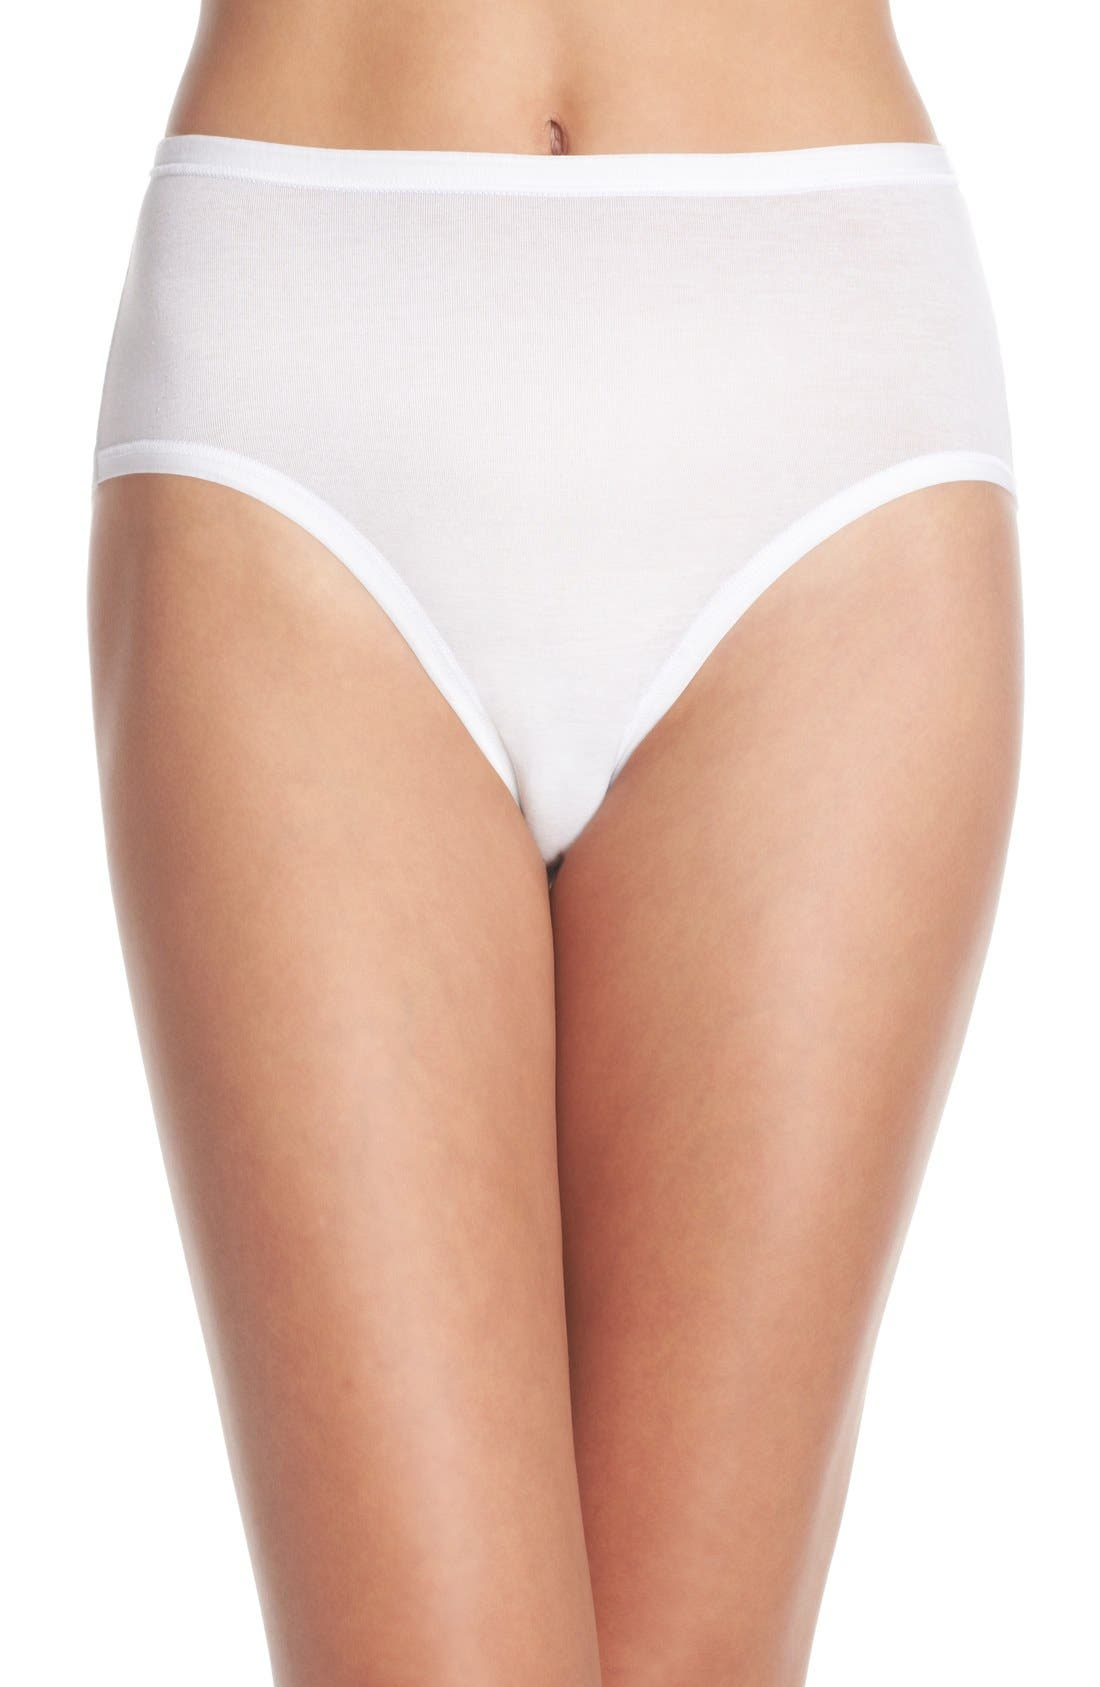 Alternate Image 1 Selected - Wacoal B Fitting High Cut Briefs (3 for $28)